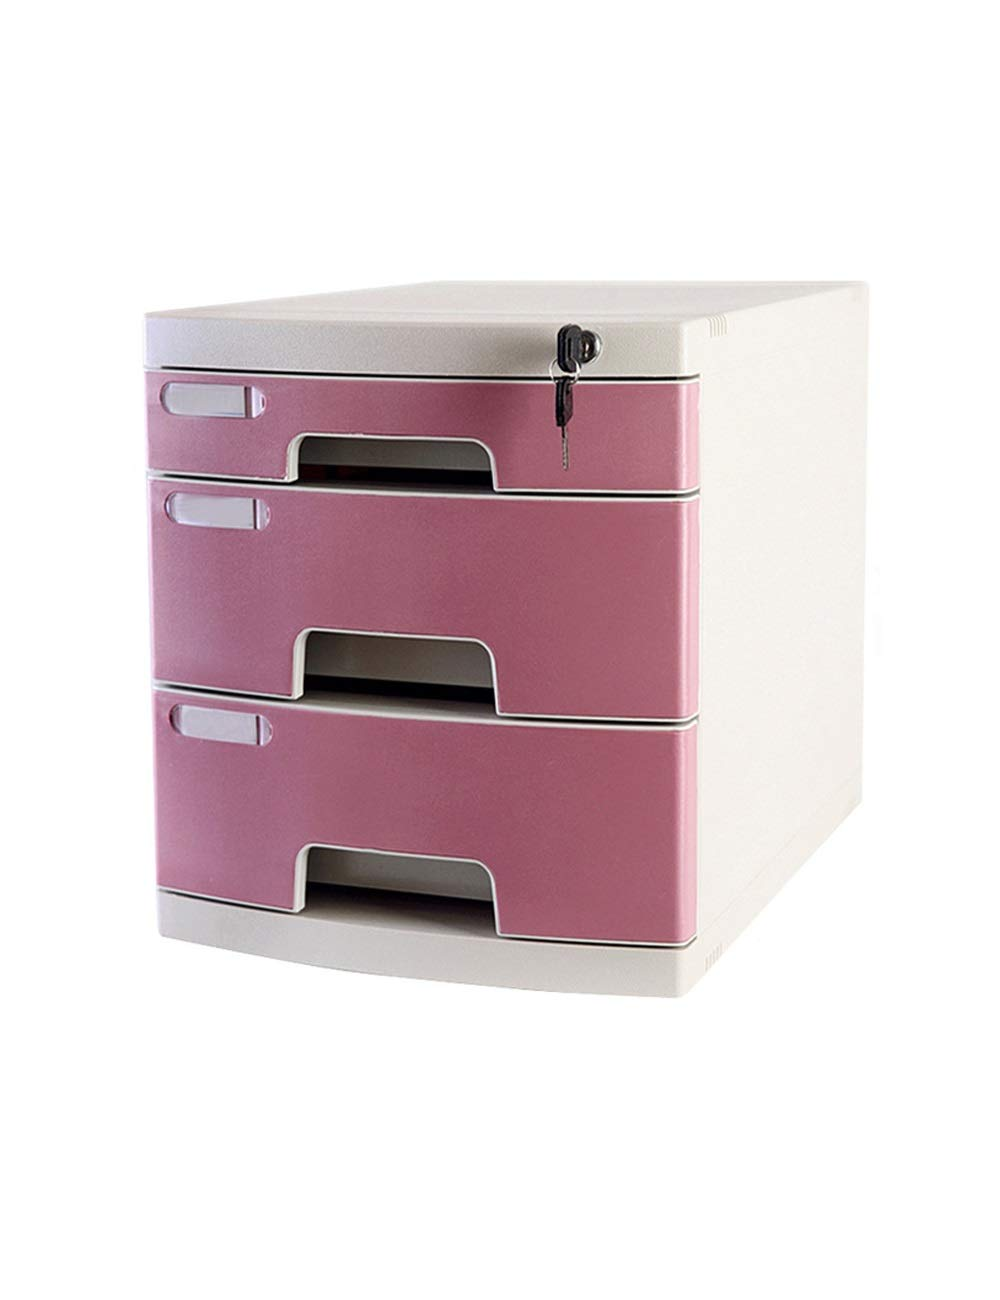 File Cabinet Desktop Cabinet 3 Drawers H325xW394xL295mm Plastic Safety Cabinet File Storage Cabinet Storage Box with Lock Filing cabinets (Color : C)